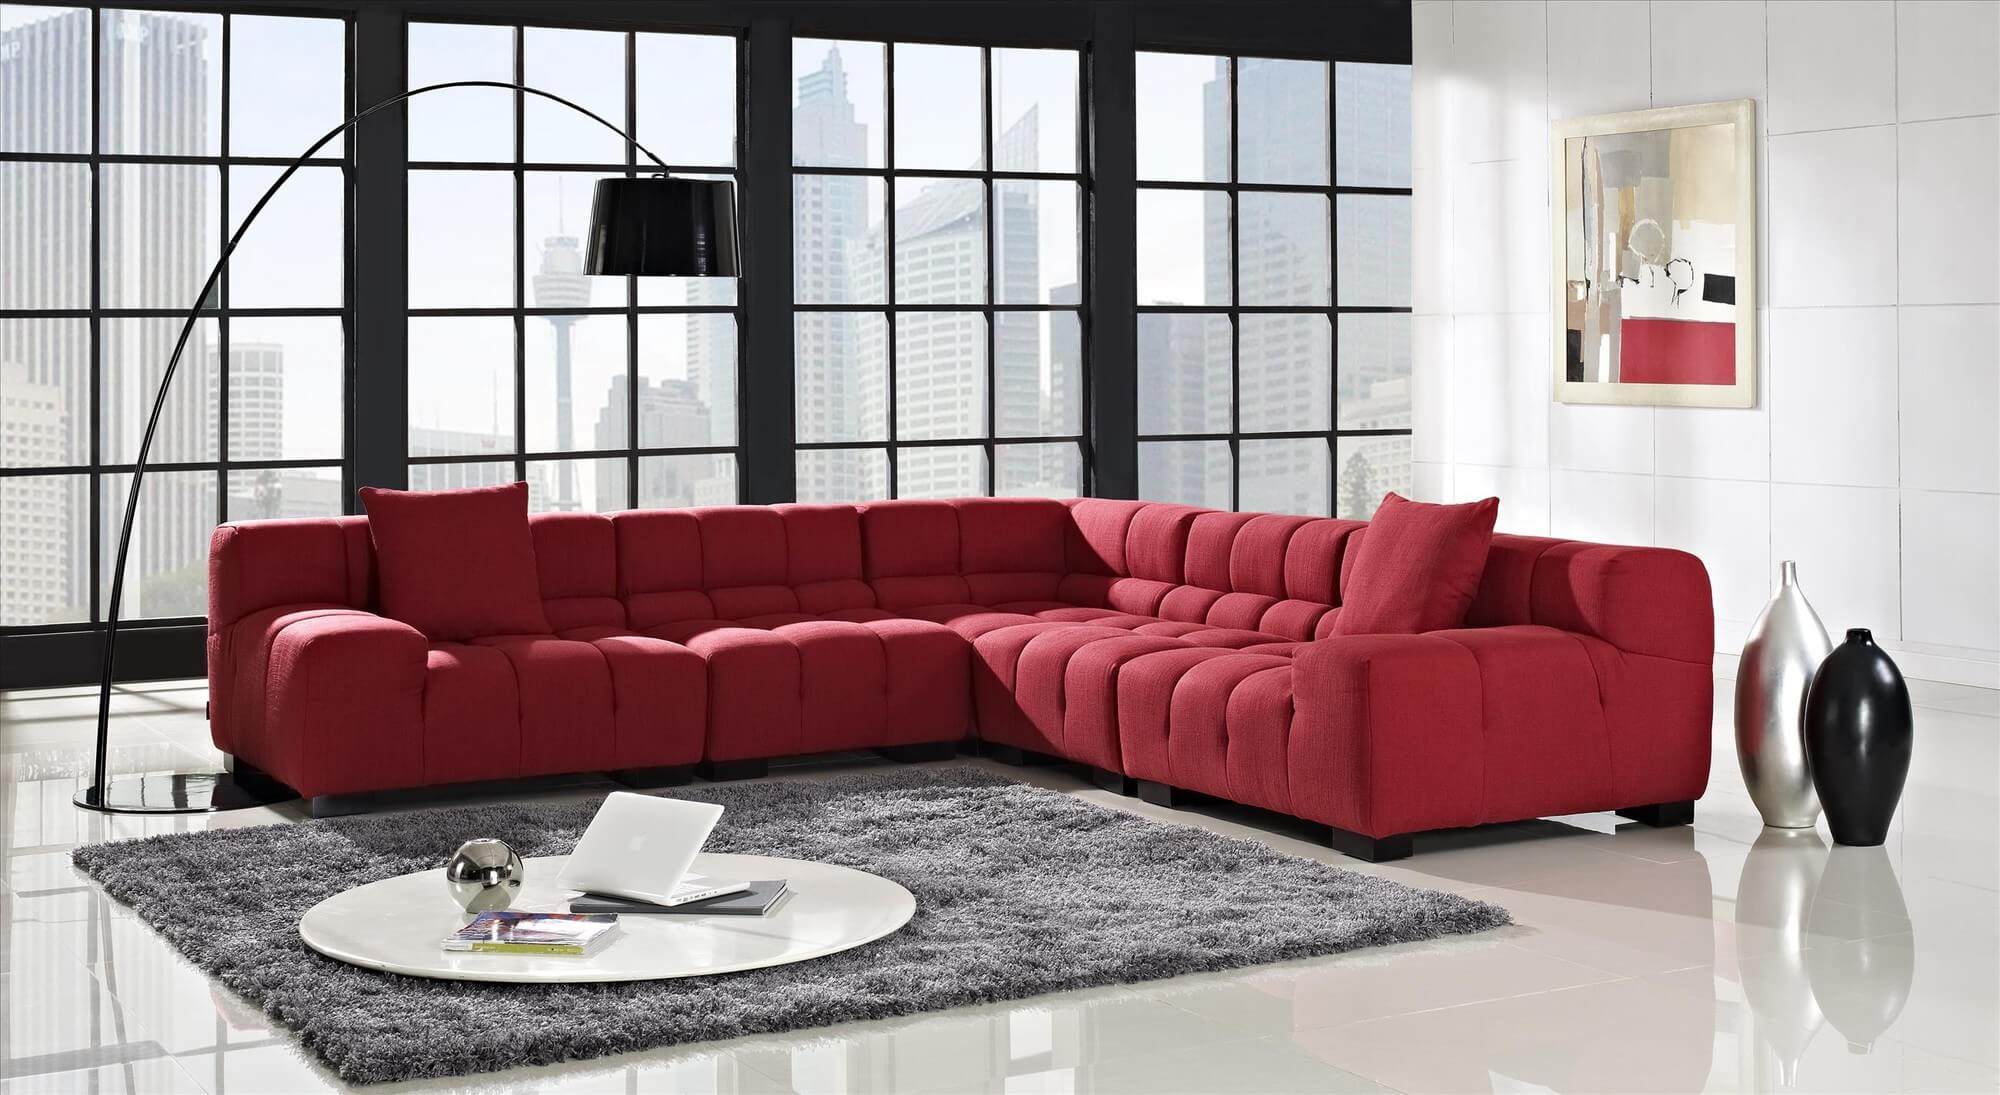 18 Stylish Modern Red Sectional Sofas Pertaining To Mireille Modern And Contemporary Fabric Upholstered Sectional Sofas (View 13 of 15)